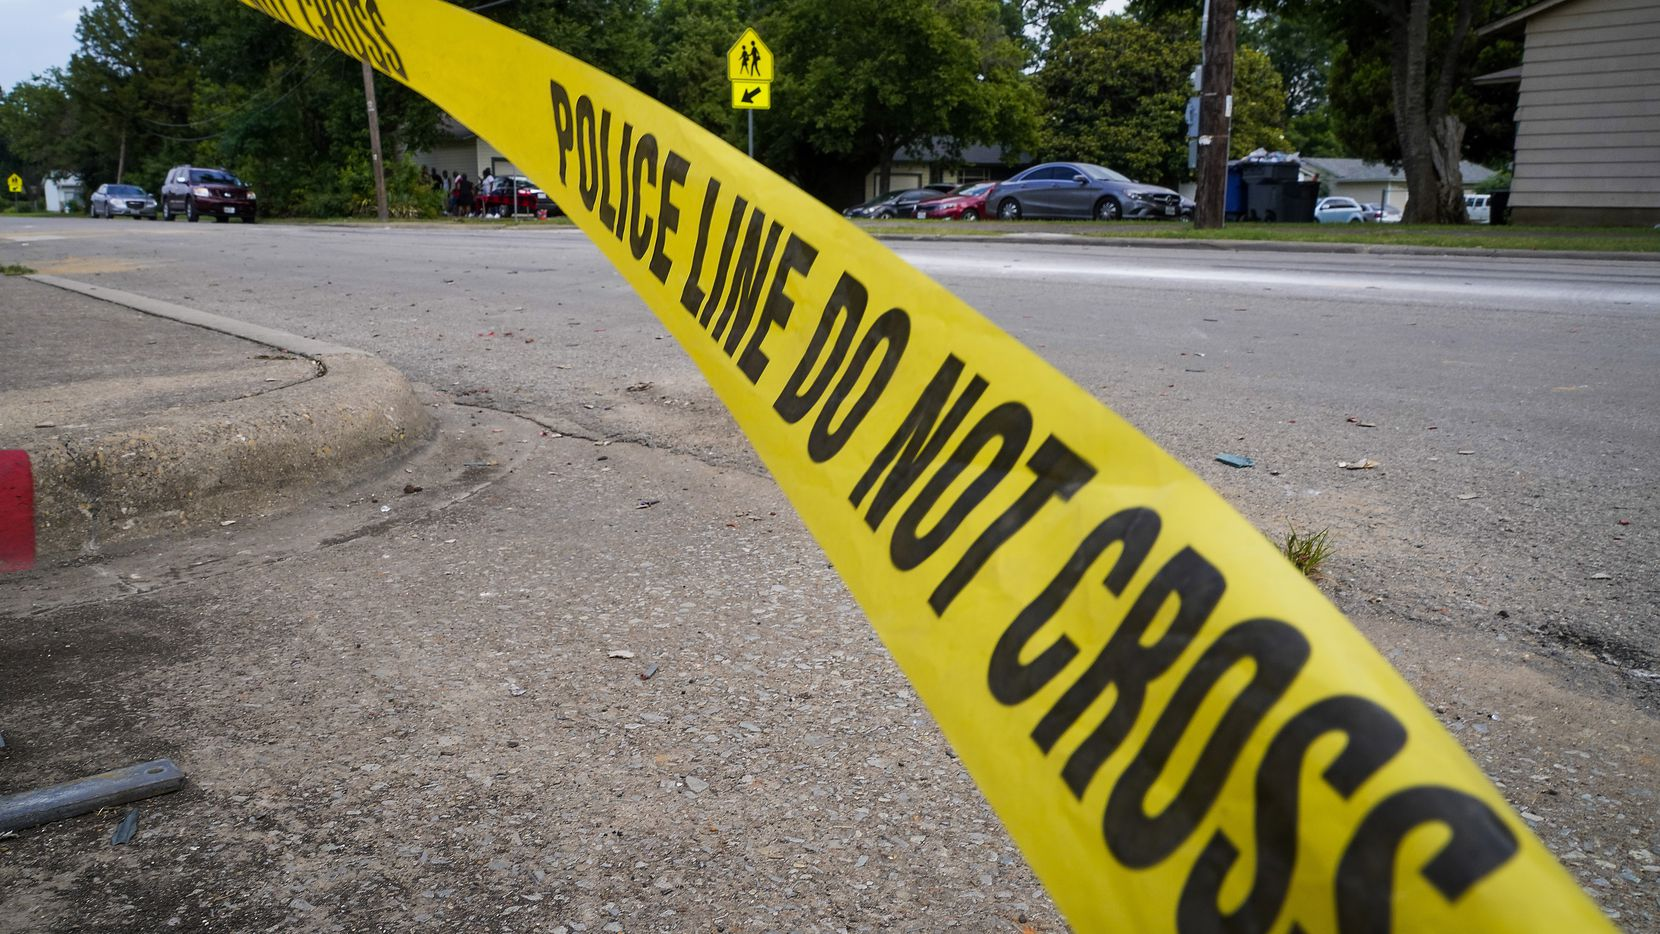 Police tape flutters at the scene scene of a shooting in the 8300 block of Towns Street earlier this month.